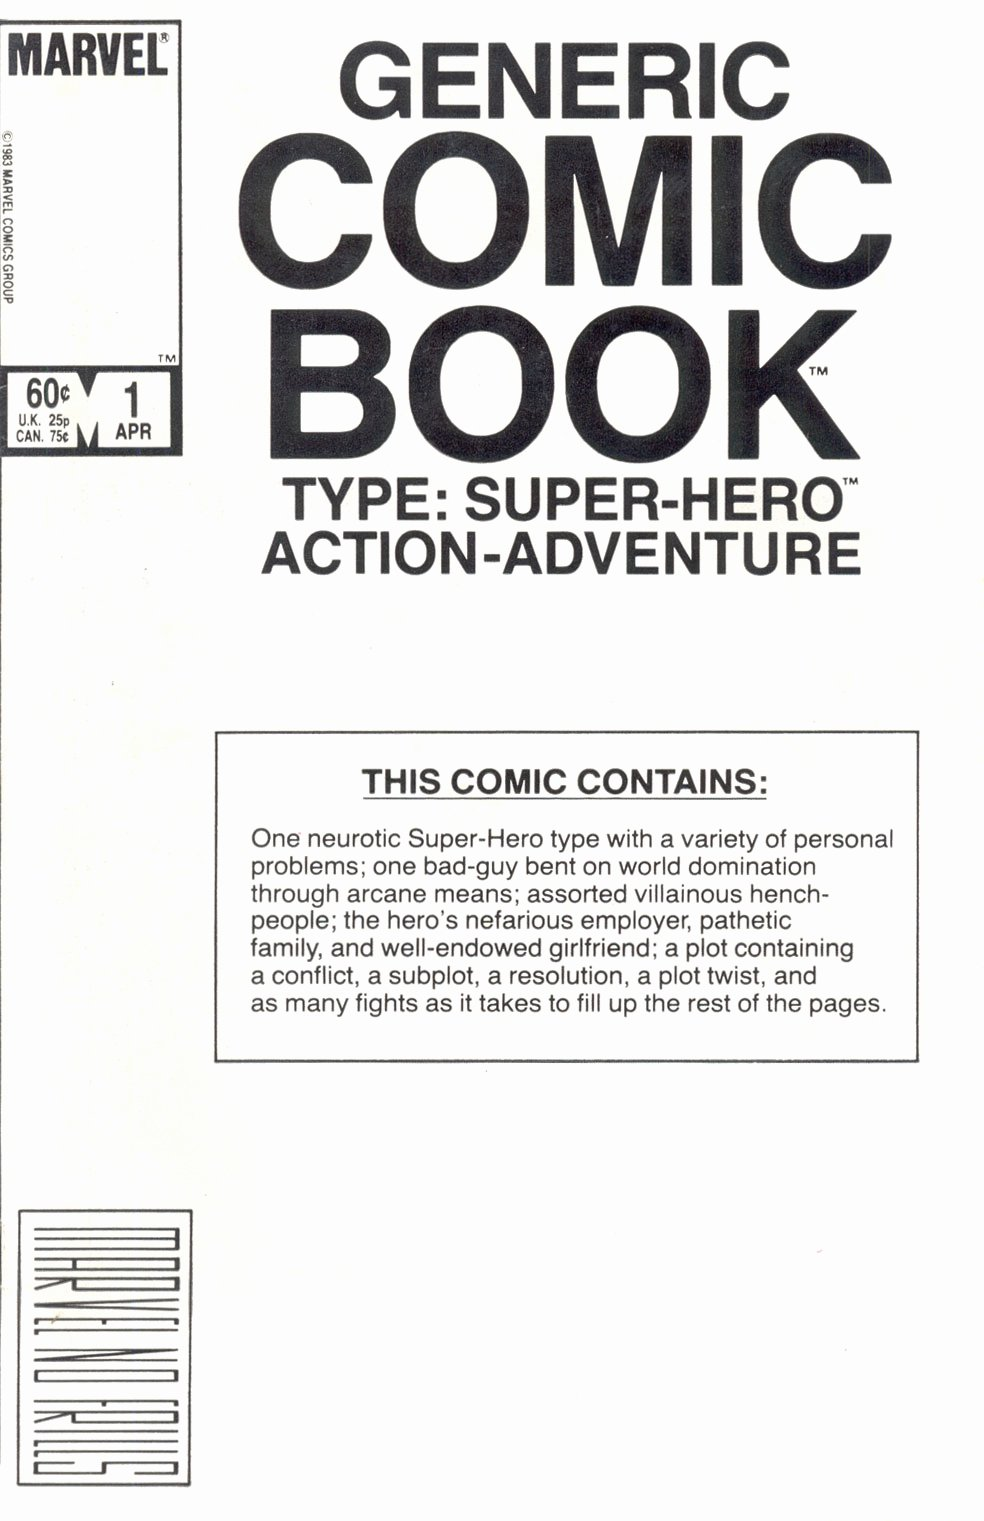 Blank Comic Book Cover Template Luxury the Saturday Ics Generic Ic Book